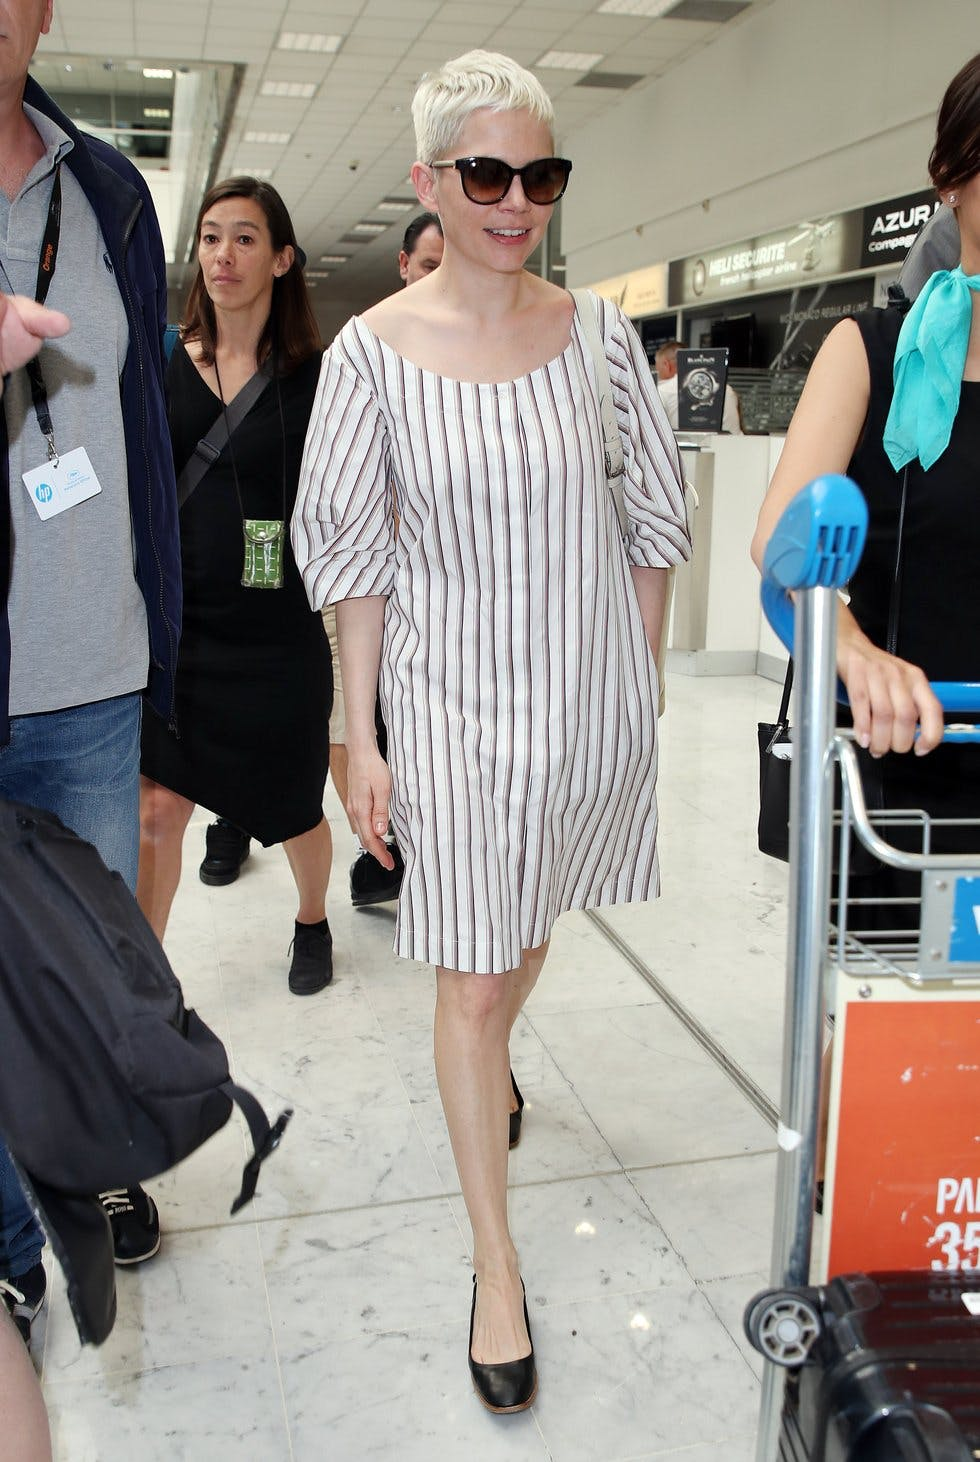 62a98f501821 A simple striped dress is a spring to summer wardrobe staple. It looks  equally chic worn with black ballet pumps and oversized sunnies for the  city, ...